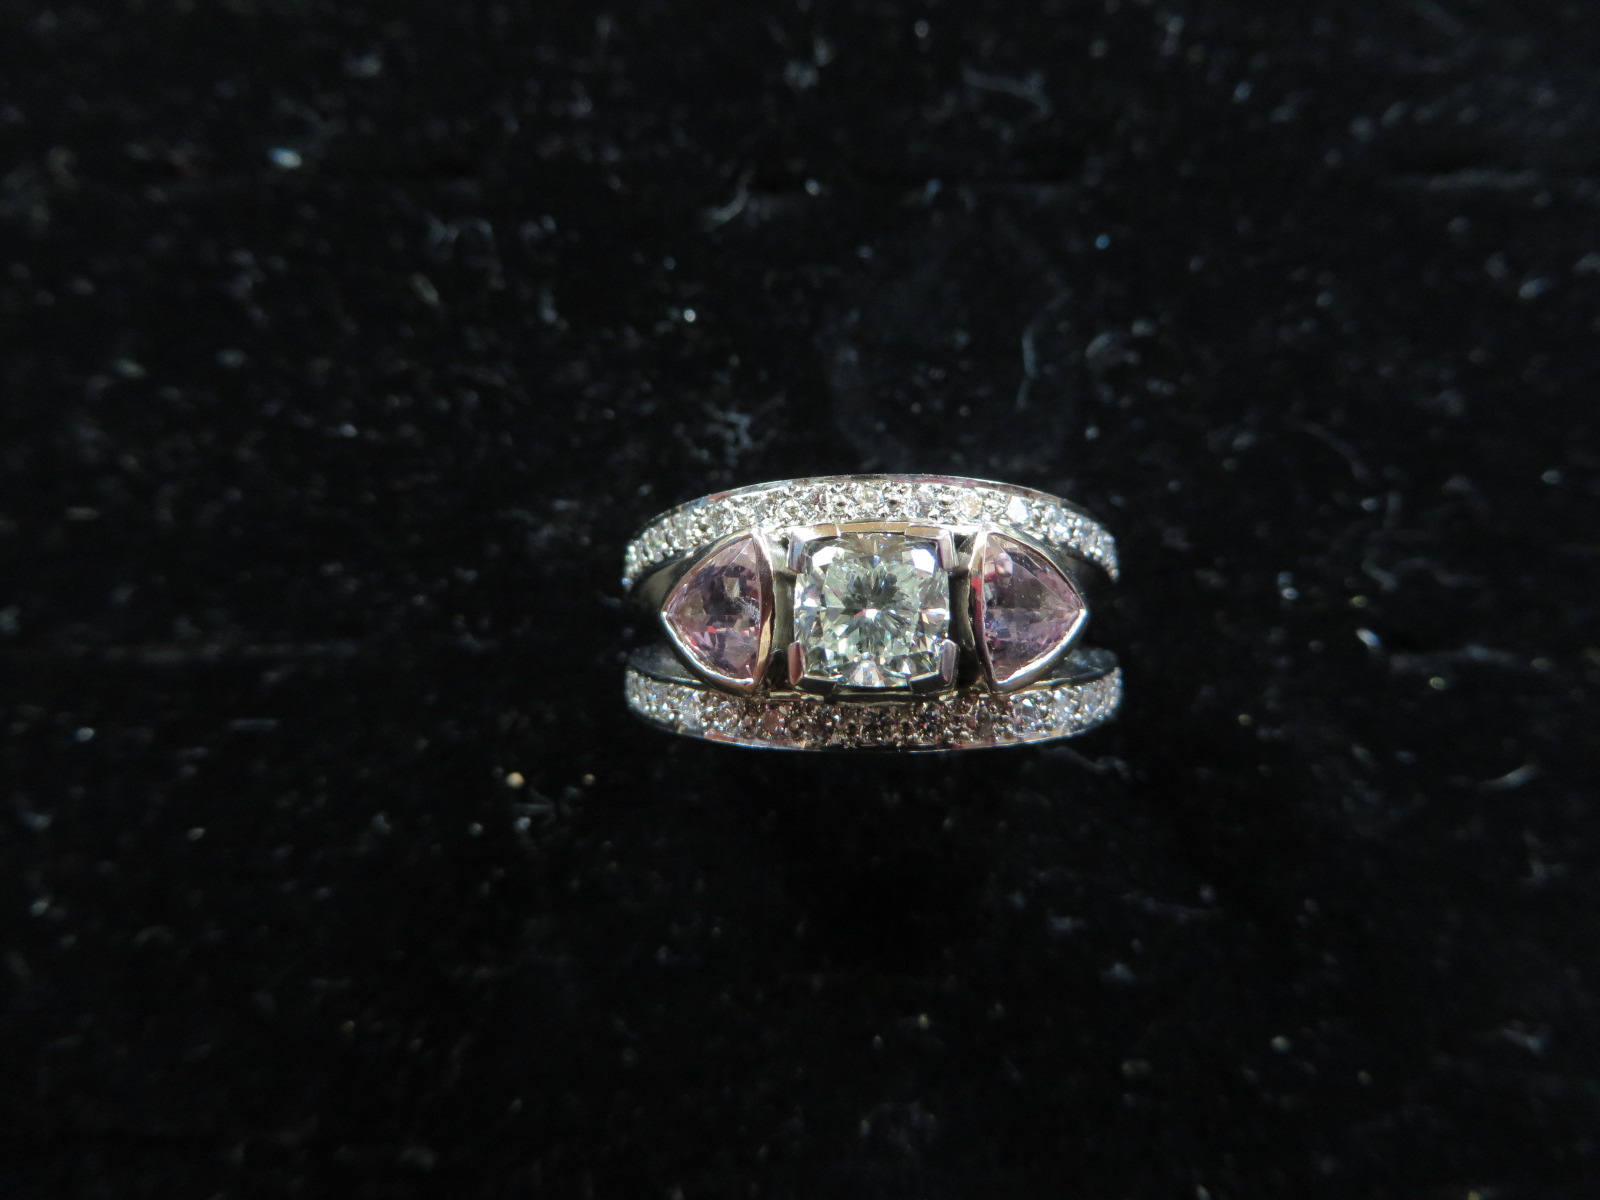 Morganite and cushion cut diamond in 18ct white and rose gold engagement ring alternative for this lady she only had the one ring and it is beautiful.